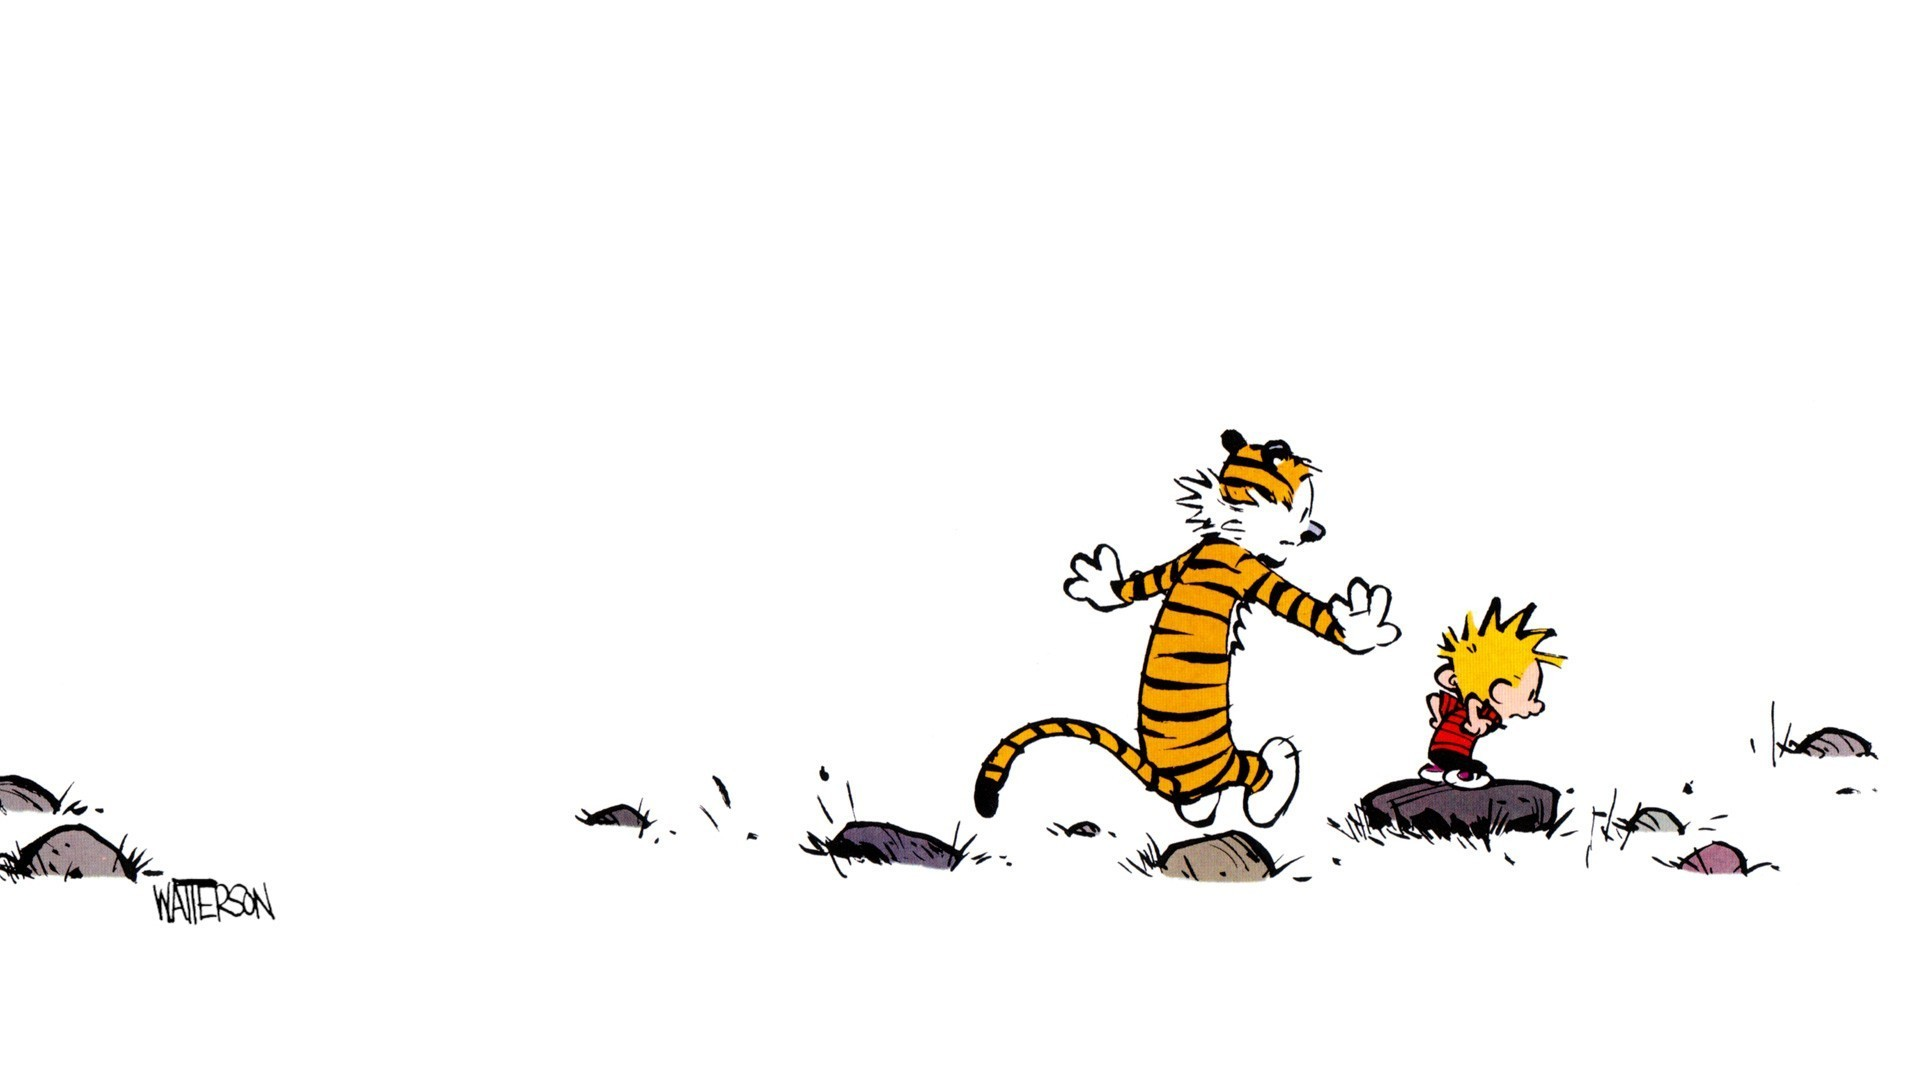 1920x1080 Explore Calvin And Hobbes Wallpaper and more!